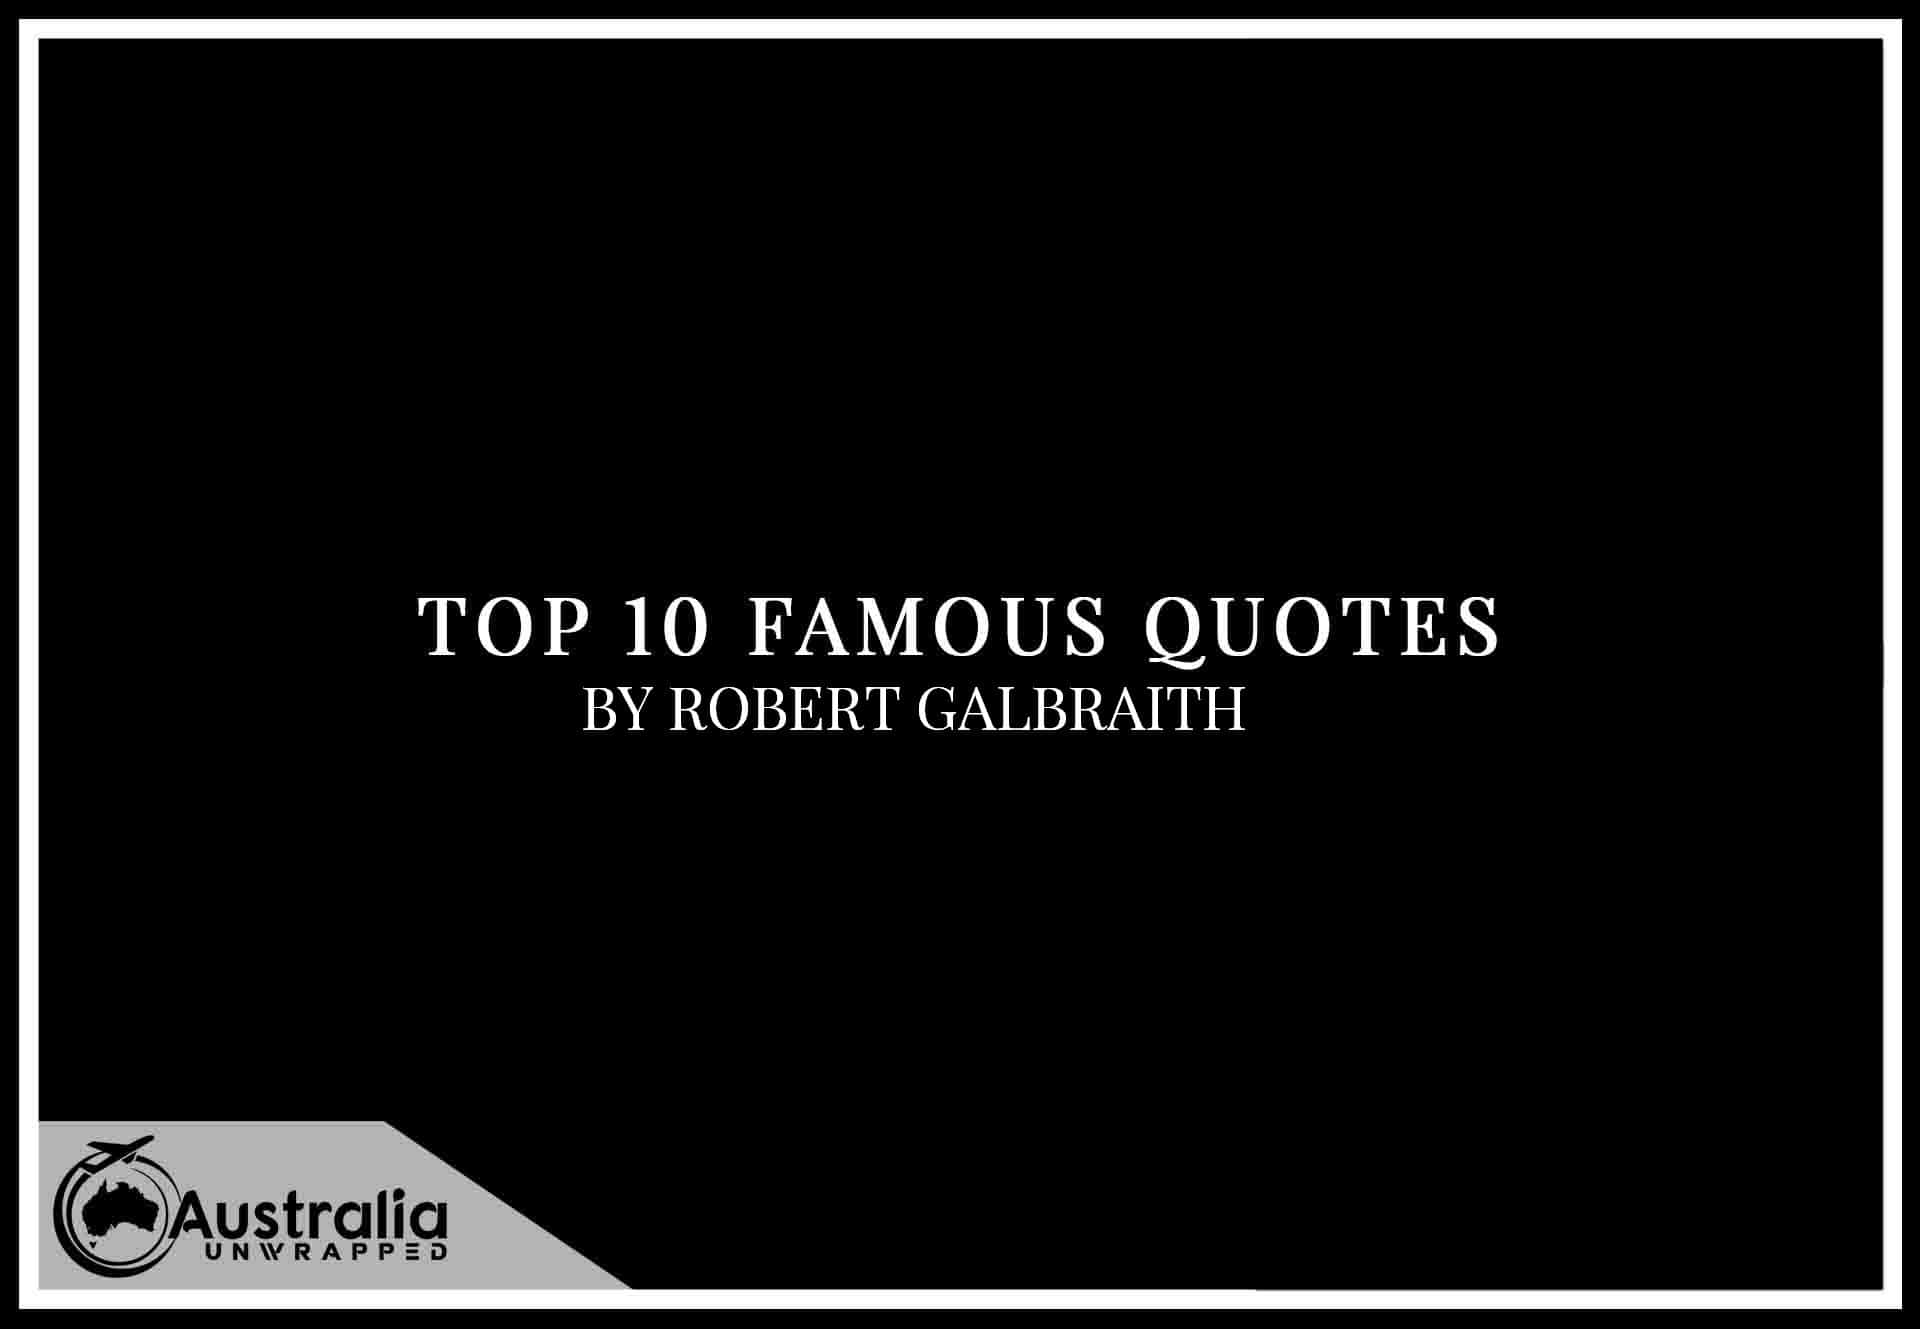 Top 10 Famous Quotes by Author Robert Galbraith